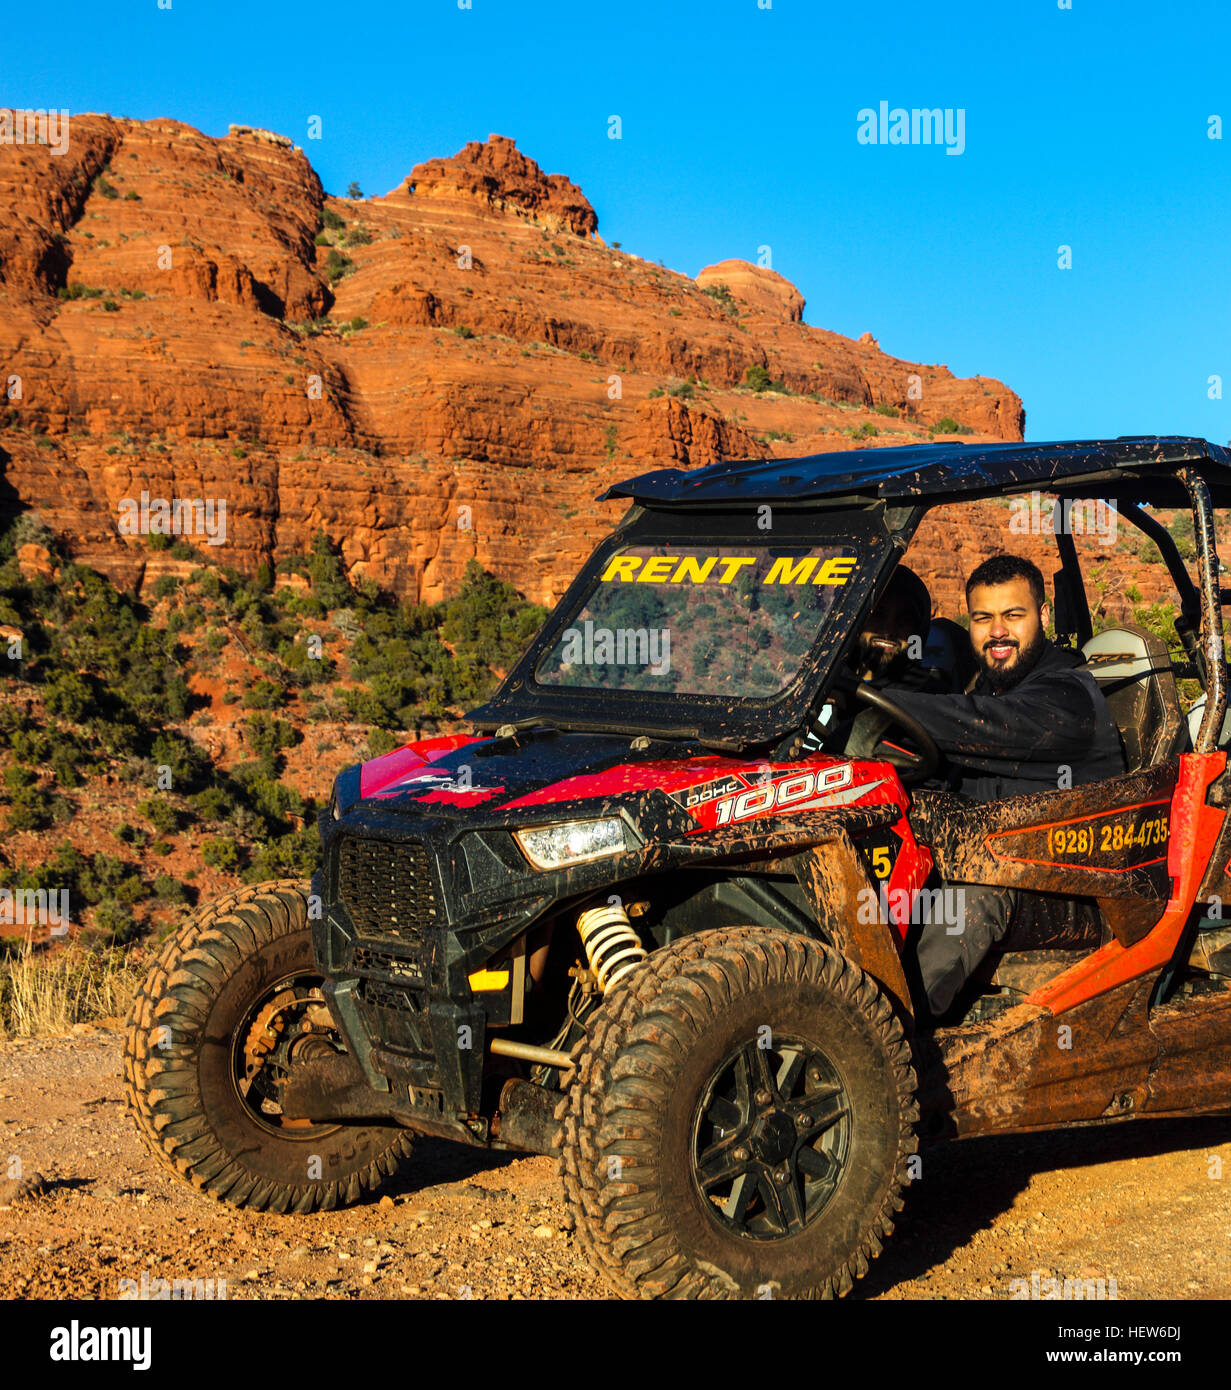 Tourists explore Schnebly Hill road in Sedona in rental ATV - Stock Image